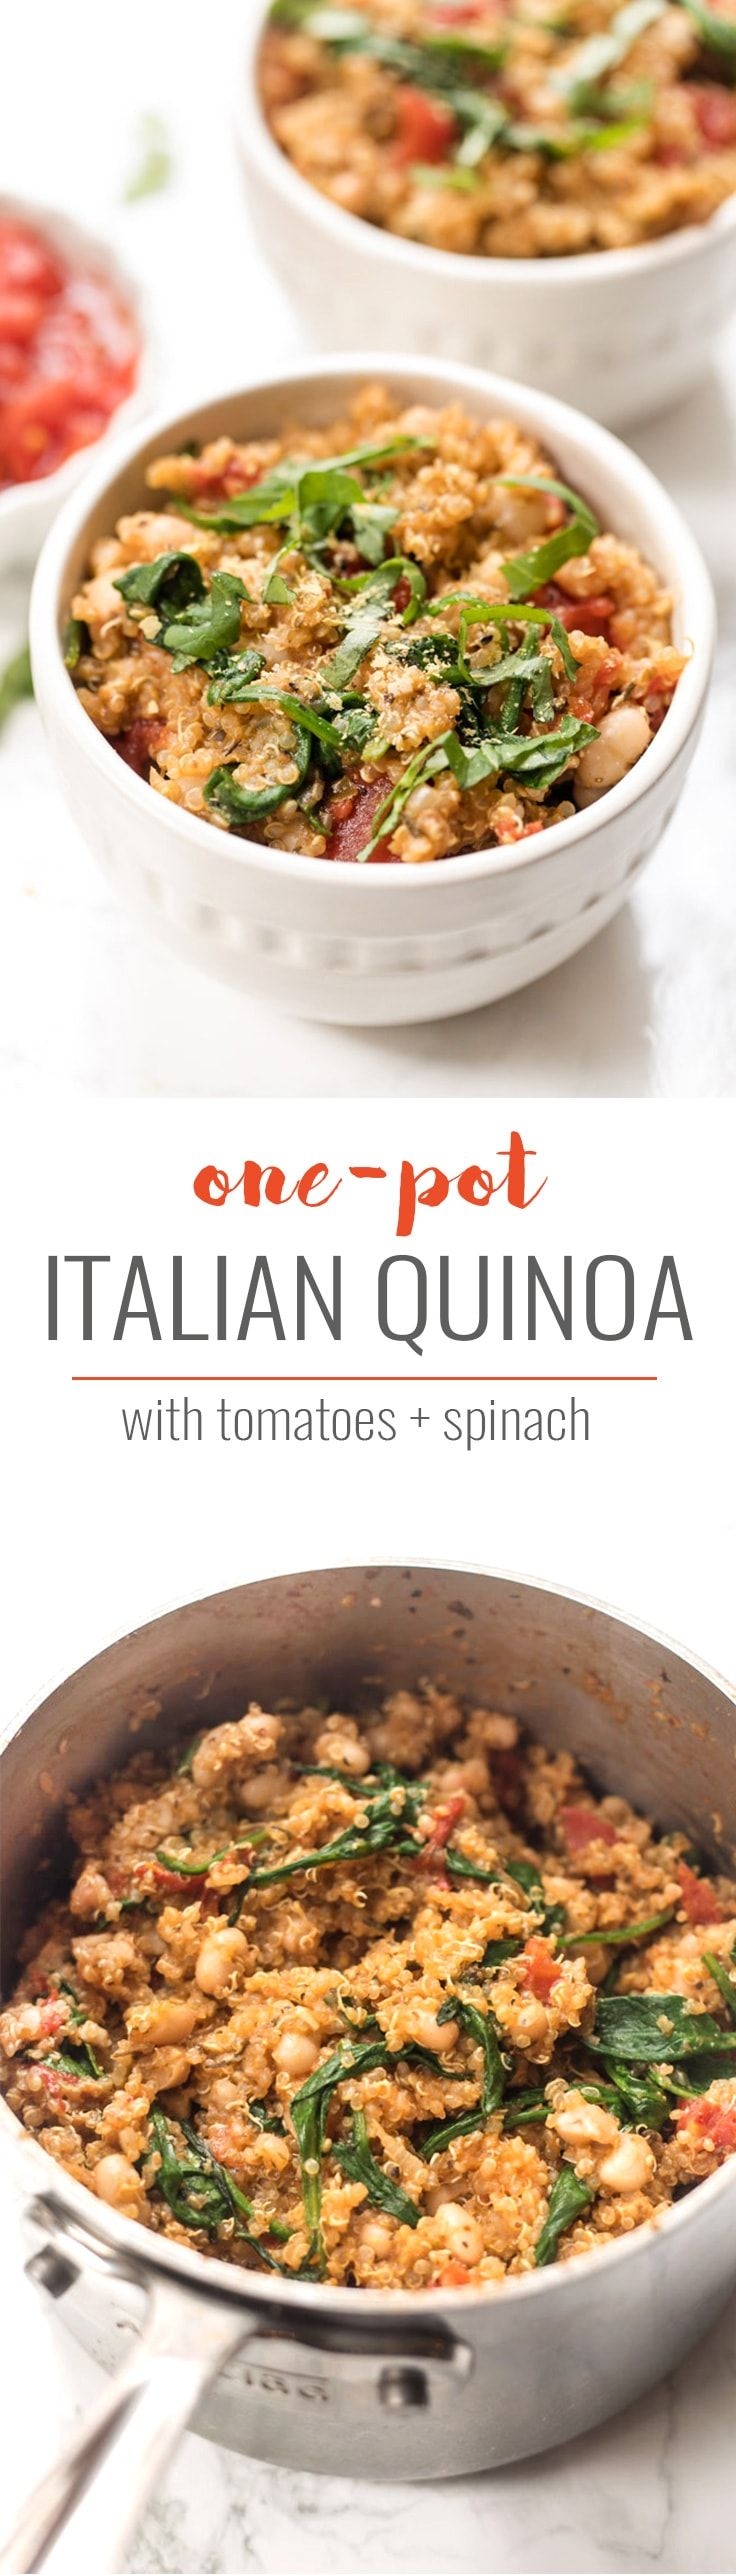 An easy & HEALTHY Italian Quinoa made in just ONE POT with tons of flavor and fresh ingredients! [VEGAN] Simply Quinoa #italianrecipe #onepot #quinoarecipe #simplyquinoa #veganrecipe